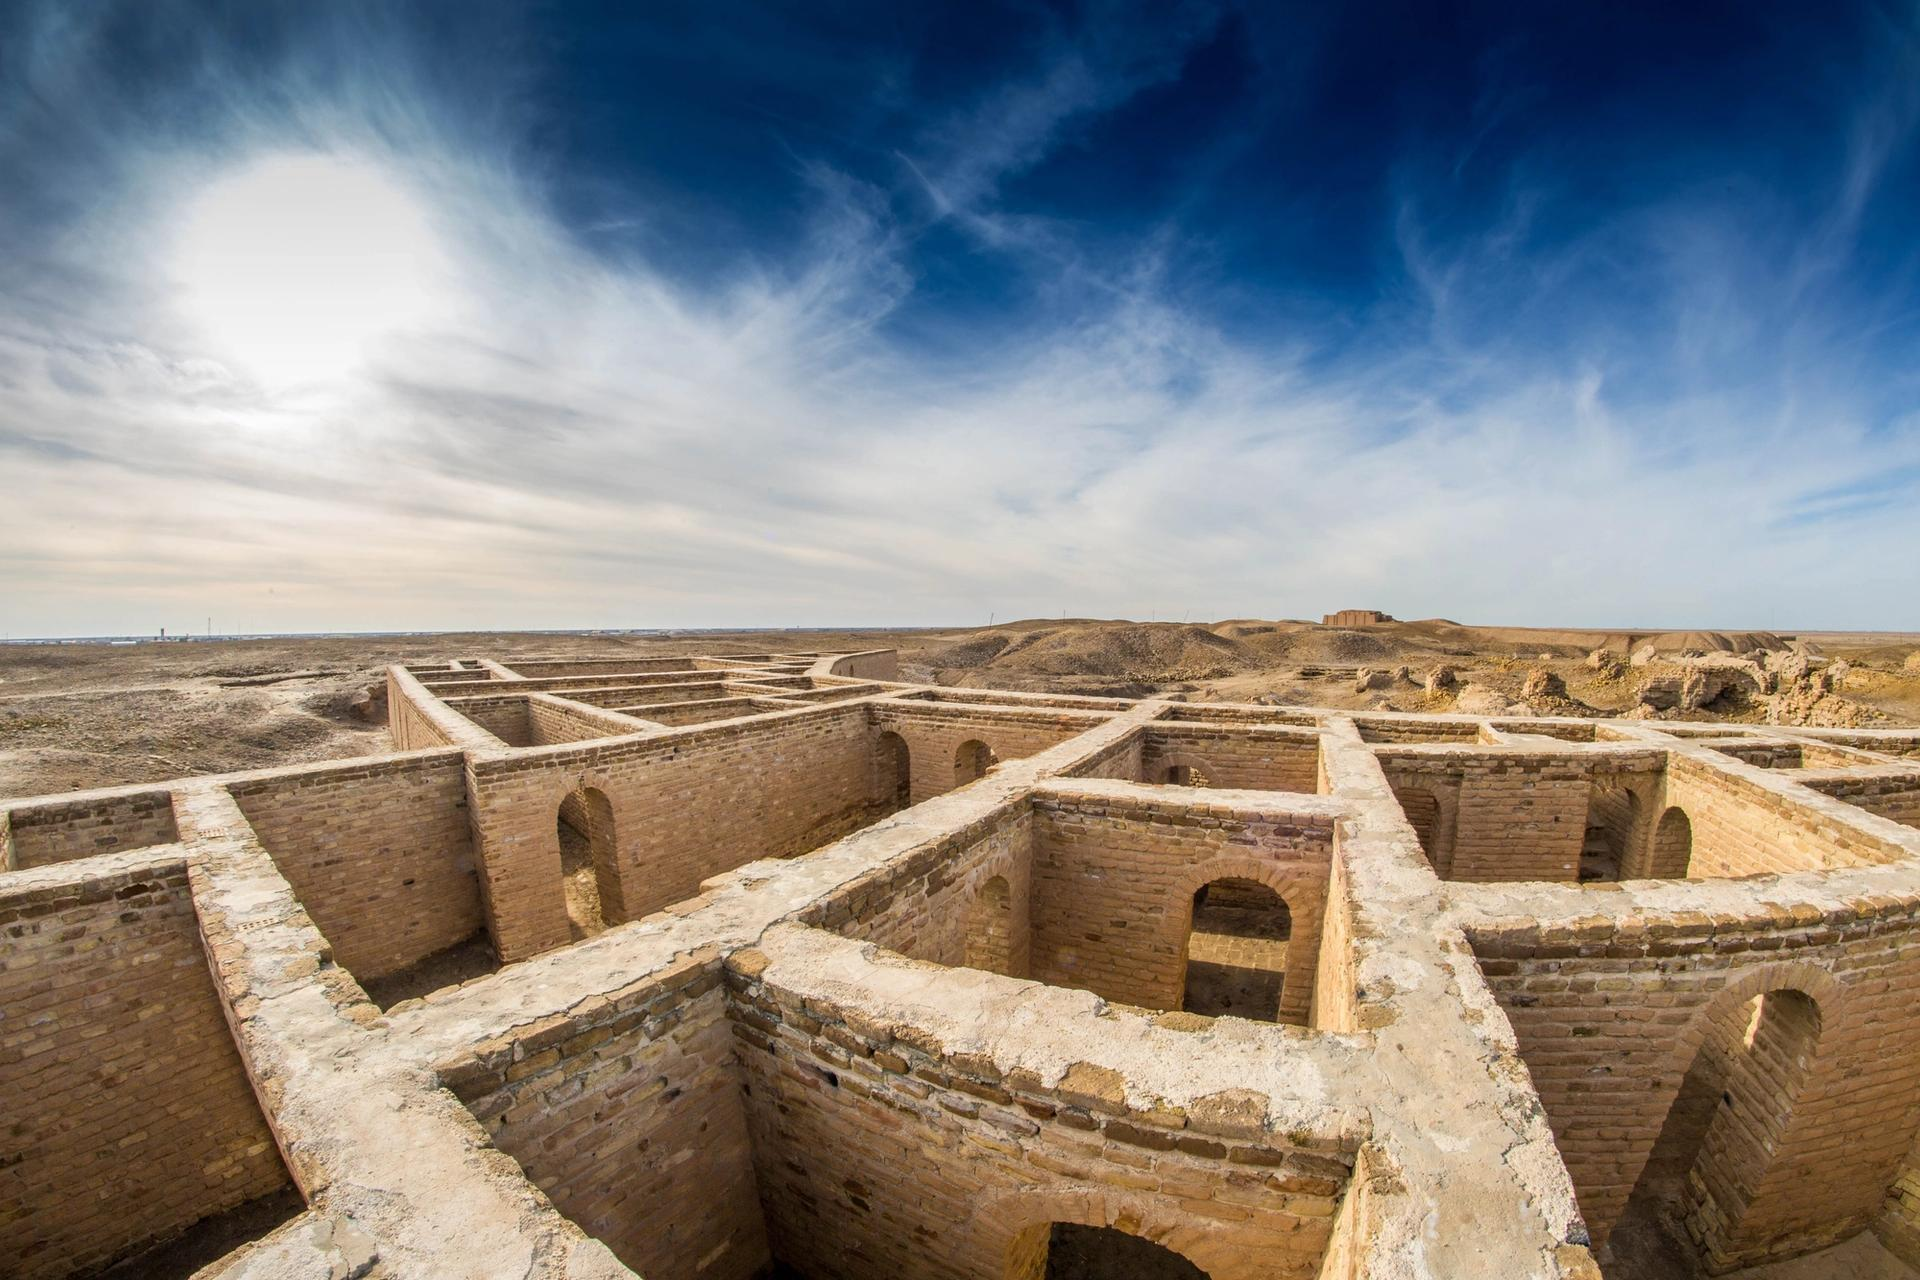 The new discovery is in Dhi Qar, southern Iraq, home to many archaeological sites including ziggurat temples, ancient burial grounds, and the so-called Home of Abraham (pictured) Photo: Aziz1005